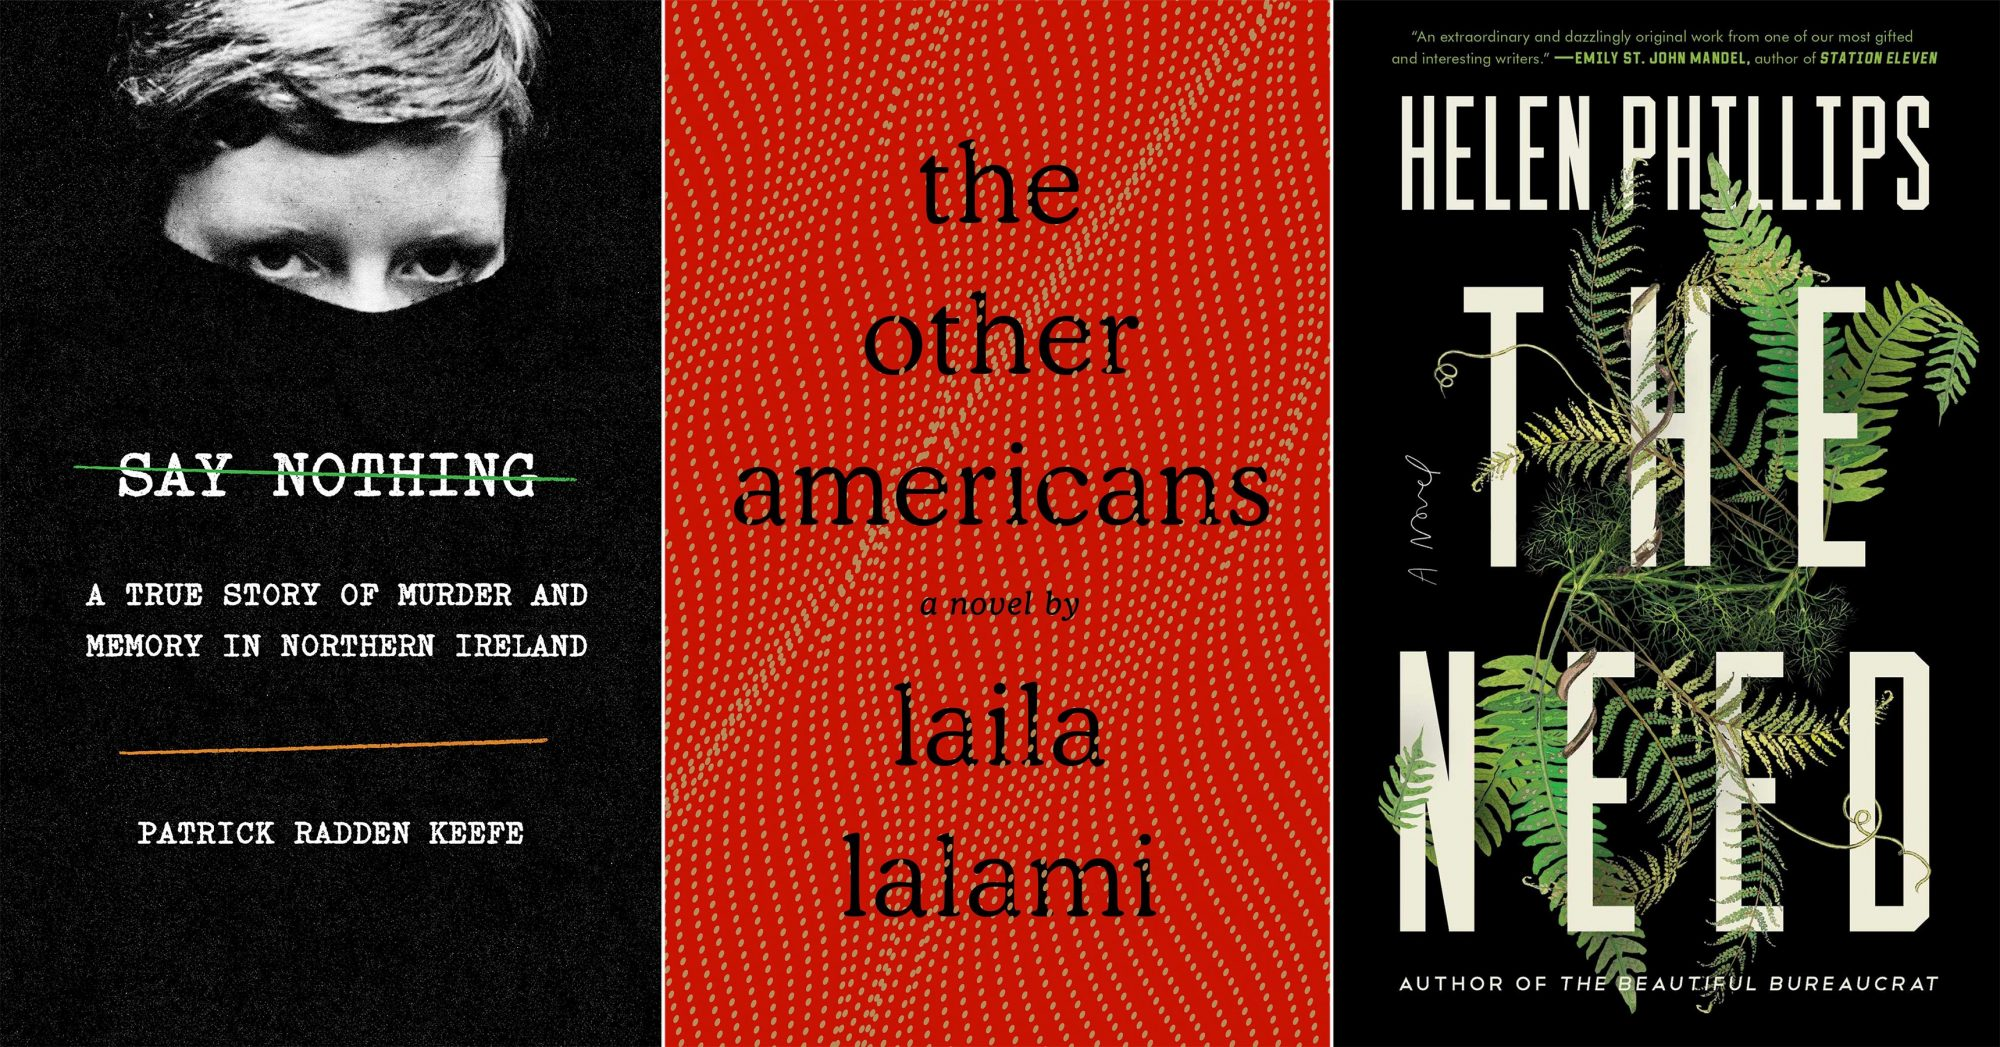 --SAY NOTHING by Patrick Radden Keefe --THE NEED by Helen Phillips --THE OTHER AMERICANS by Laila Lalami